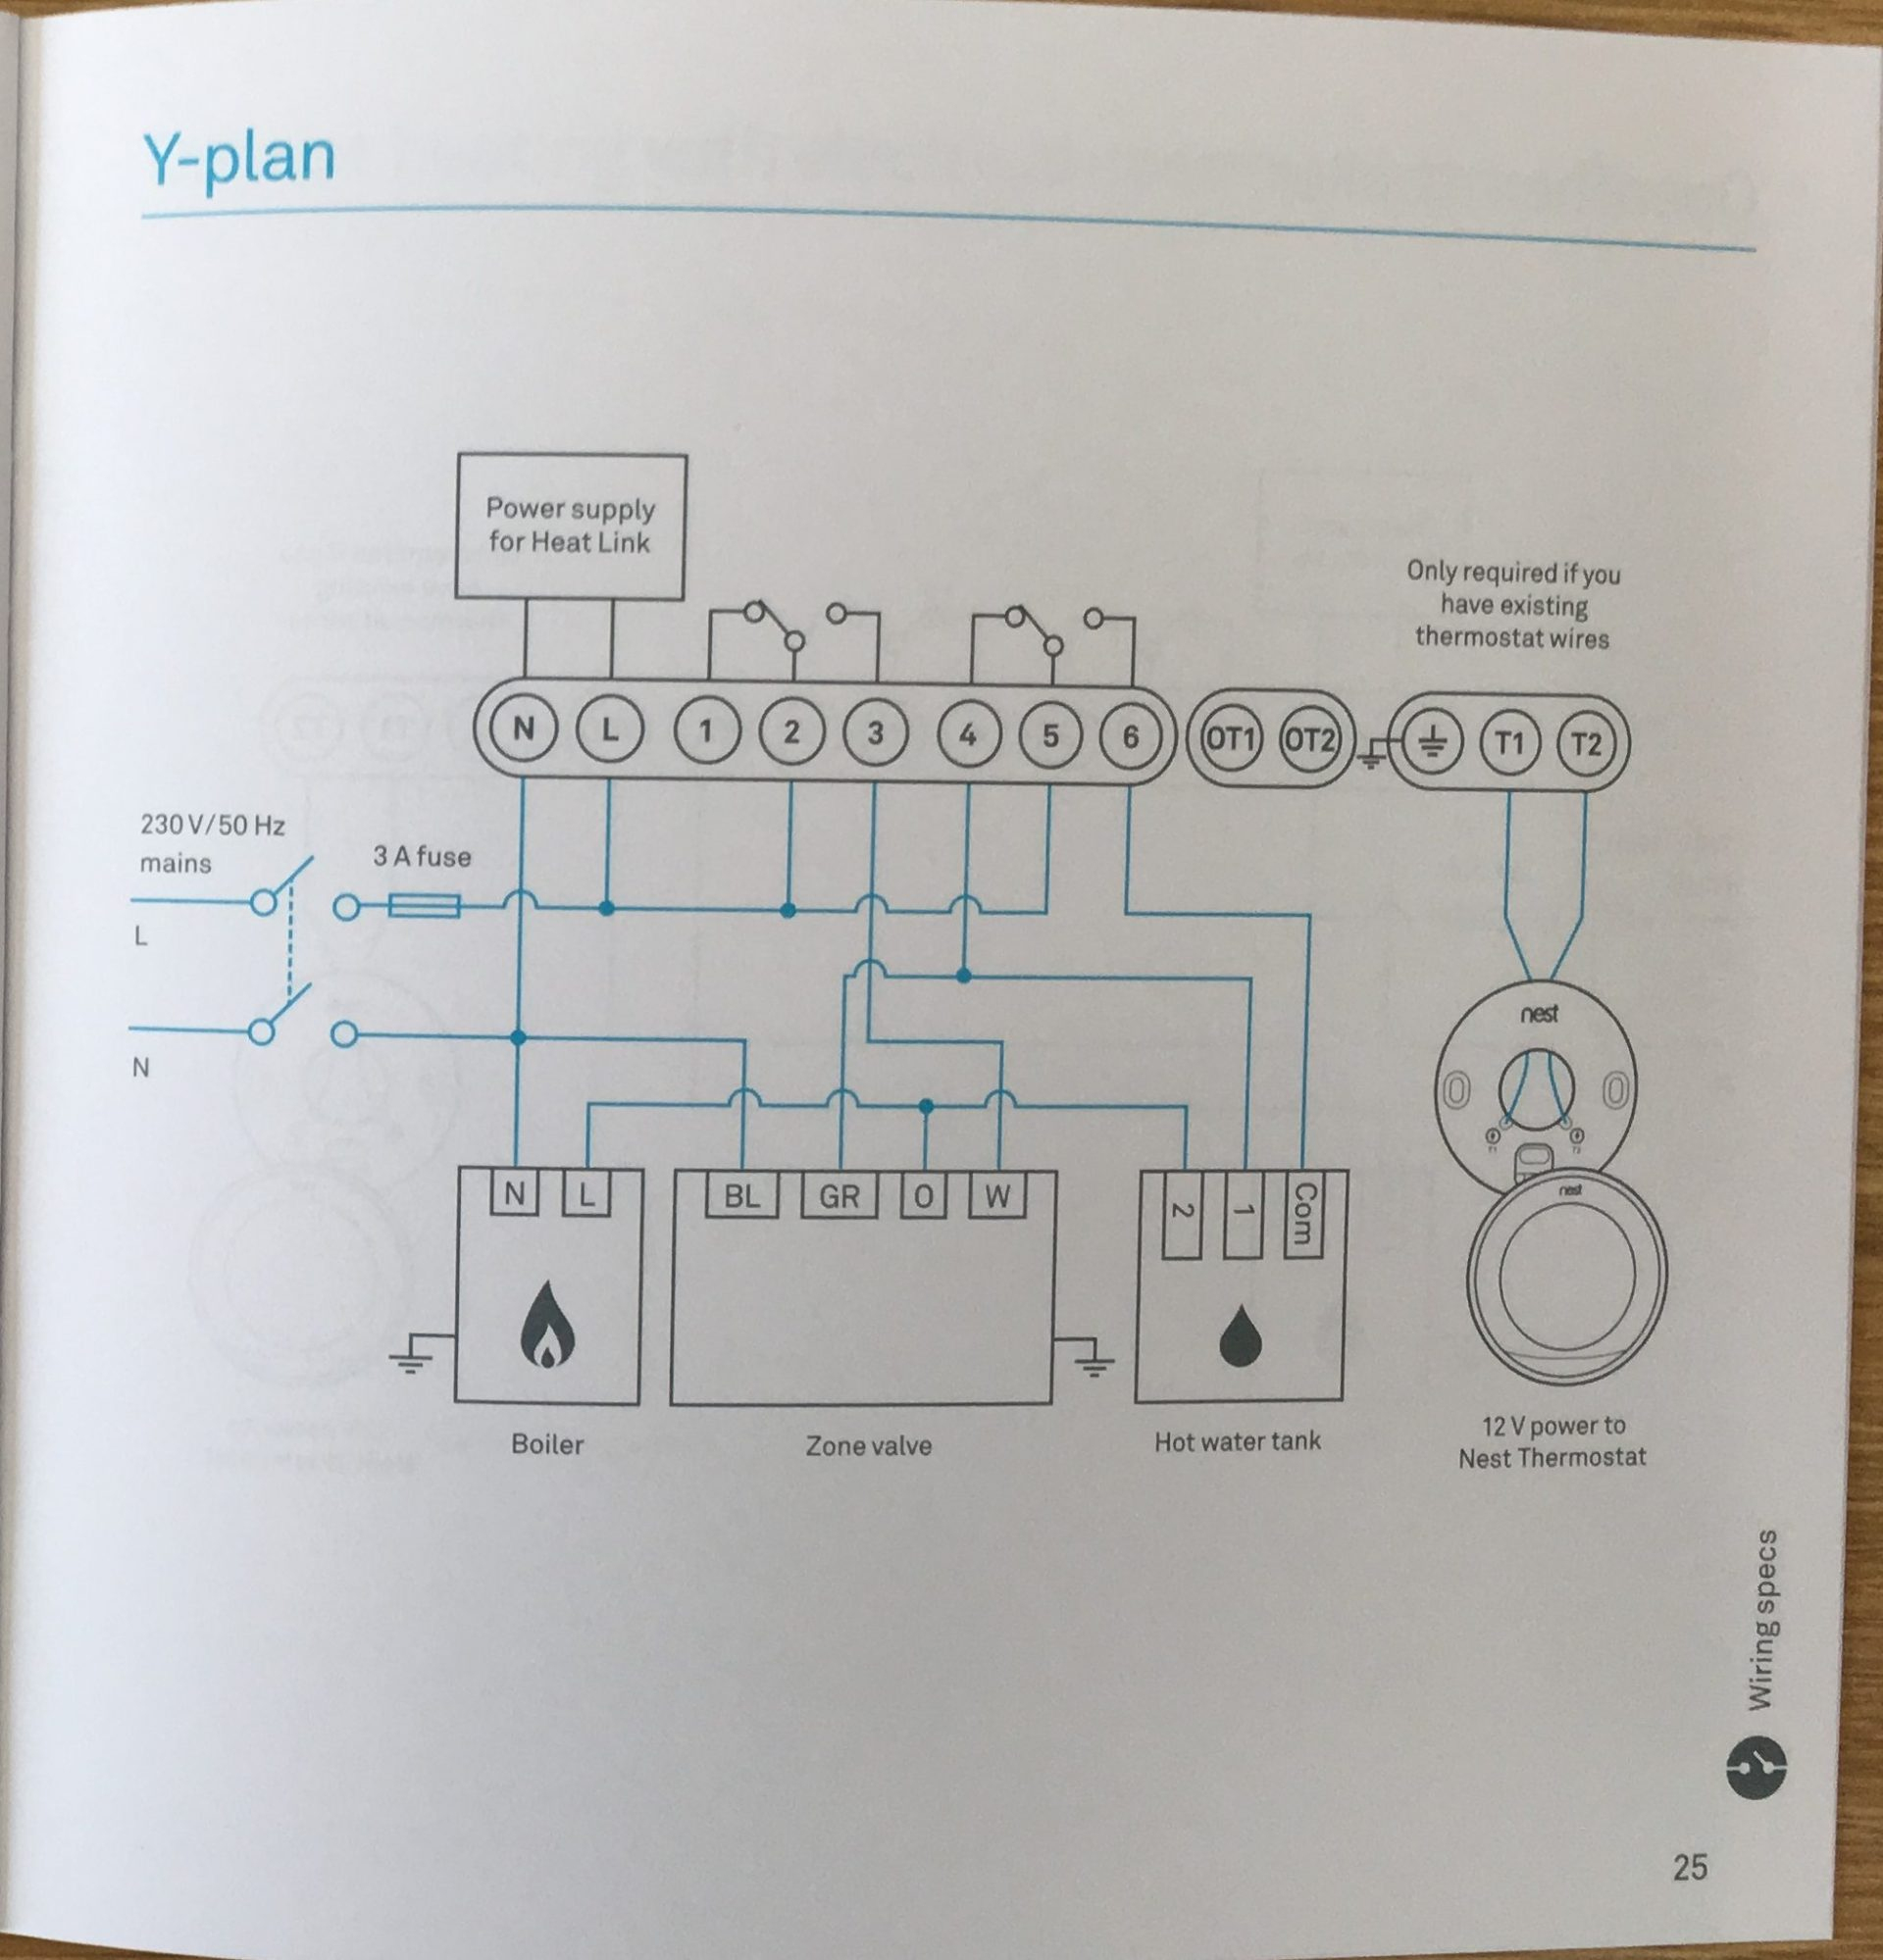 How To Install The Nest Learning Thermostat (3Rd Gen) In A Y-Plan - Nest Thermostat Wiring Diagram